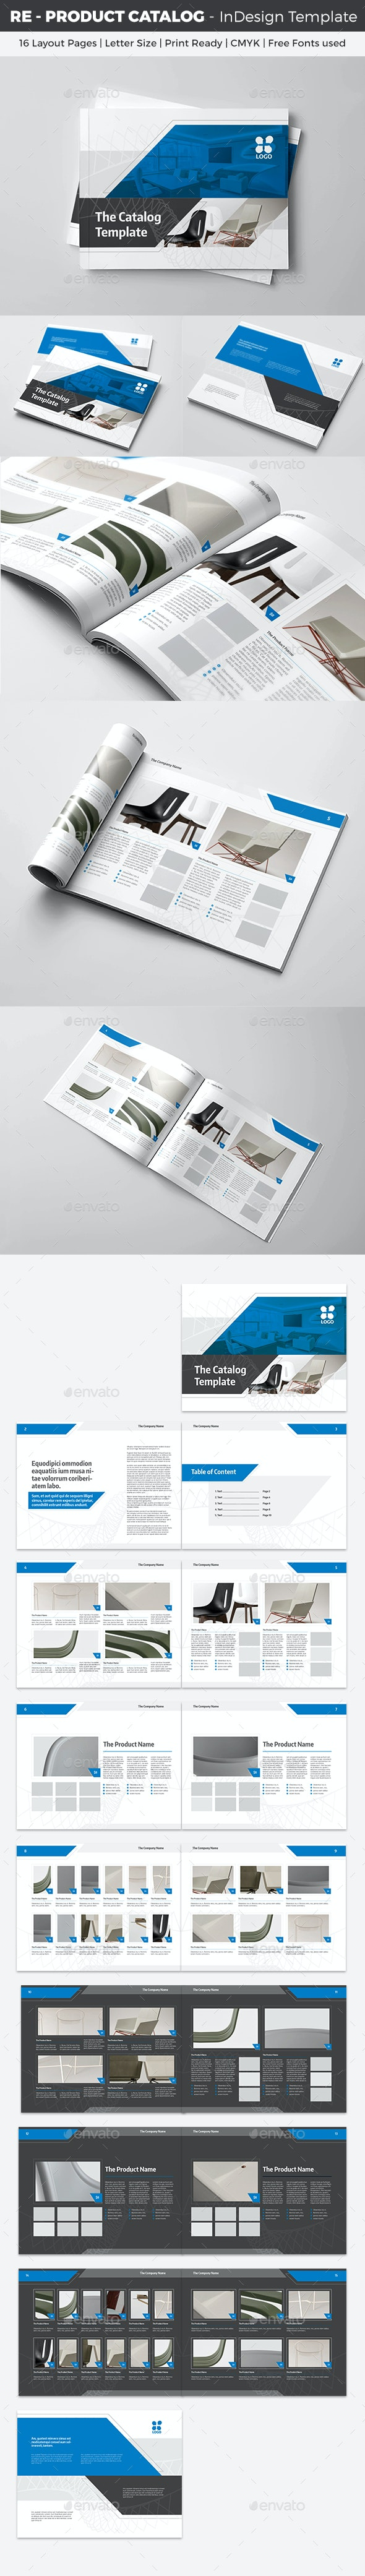 RE - Product Catalog InDesign Template - Catalogs Brochures